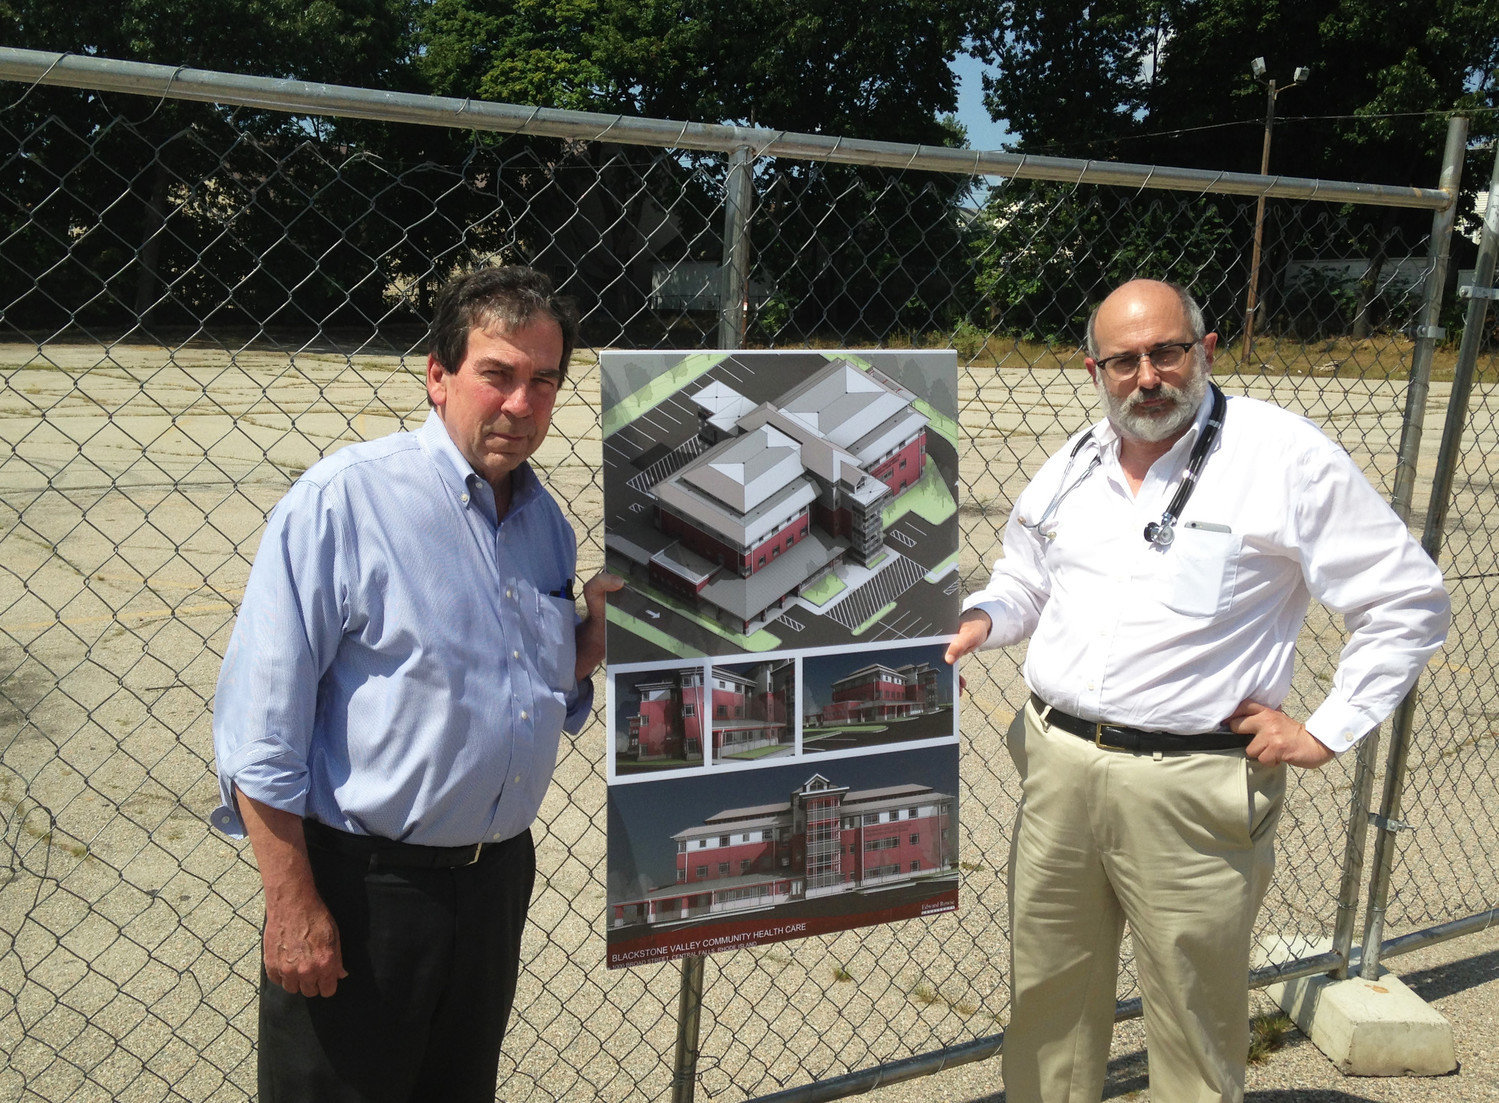 Ray Lavoie (left), Executive Director and Dr. Michael Fine (right), Senior Population Health and Community Services Officer of Blackstone Valley Community Health Care in a file photo taken at the beginning of construction of the new Neighborhood Health Station in Central Falls